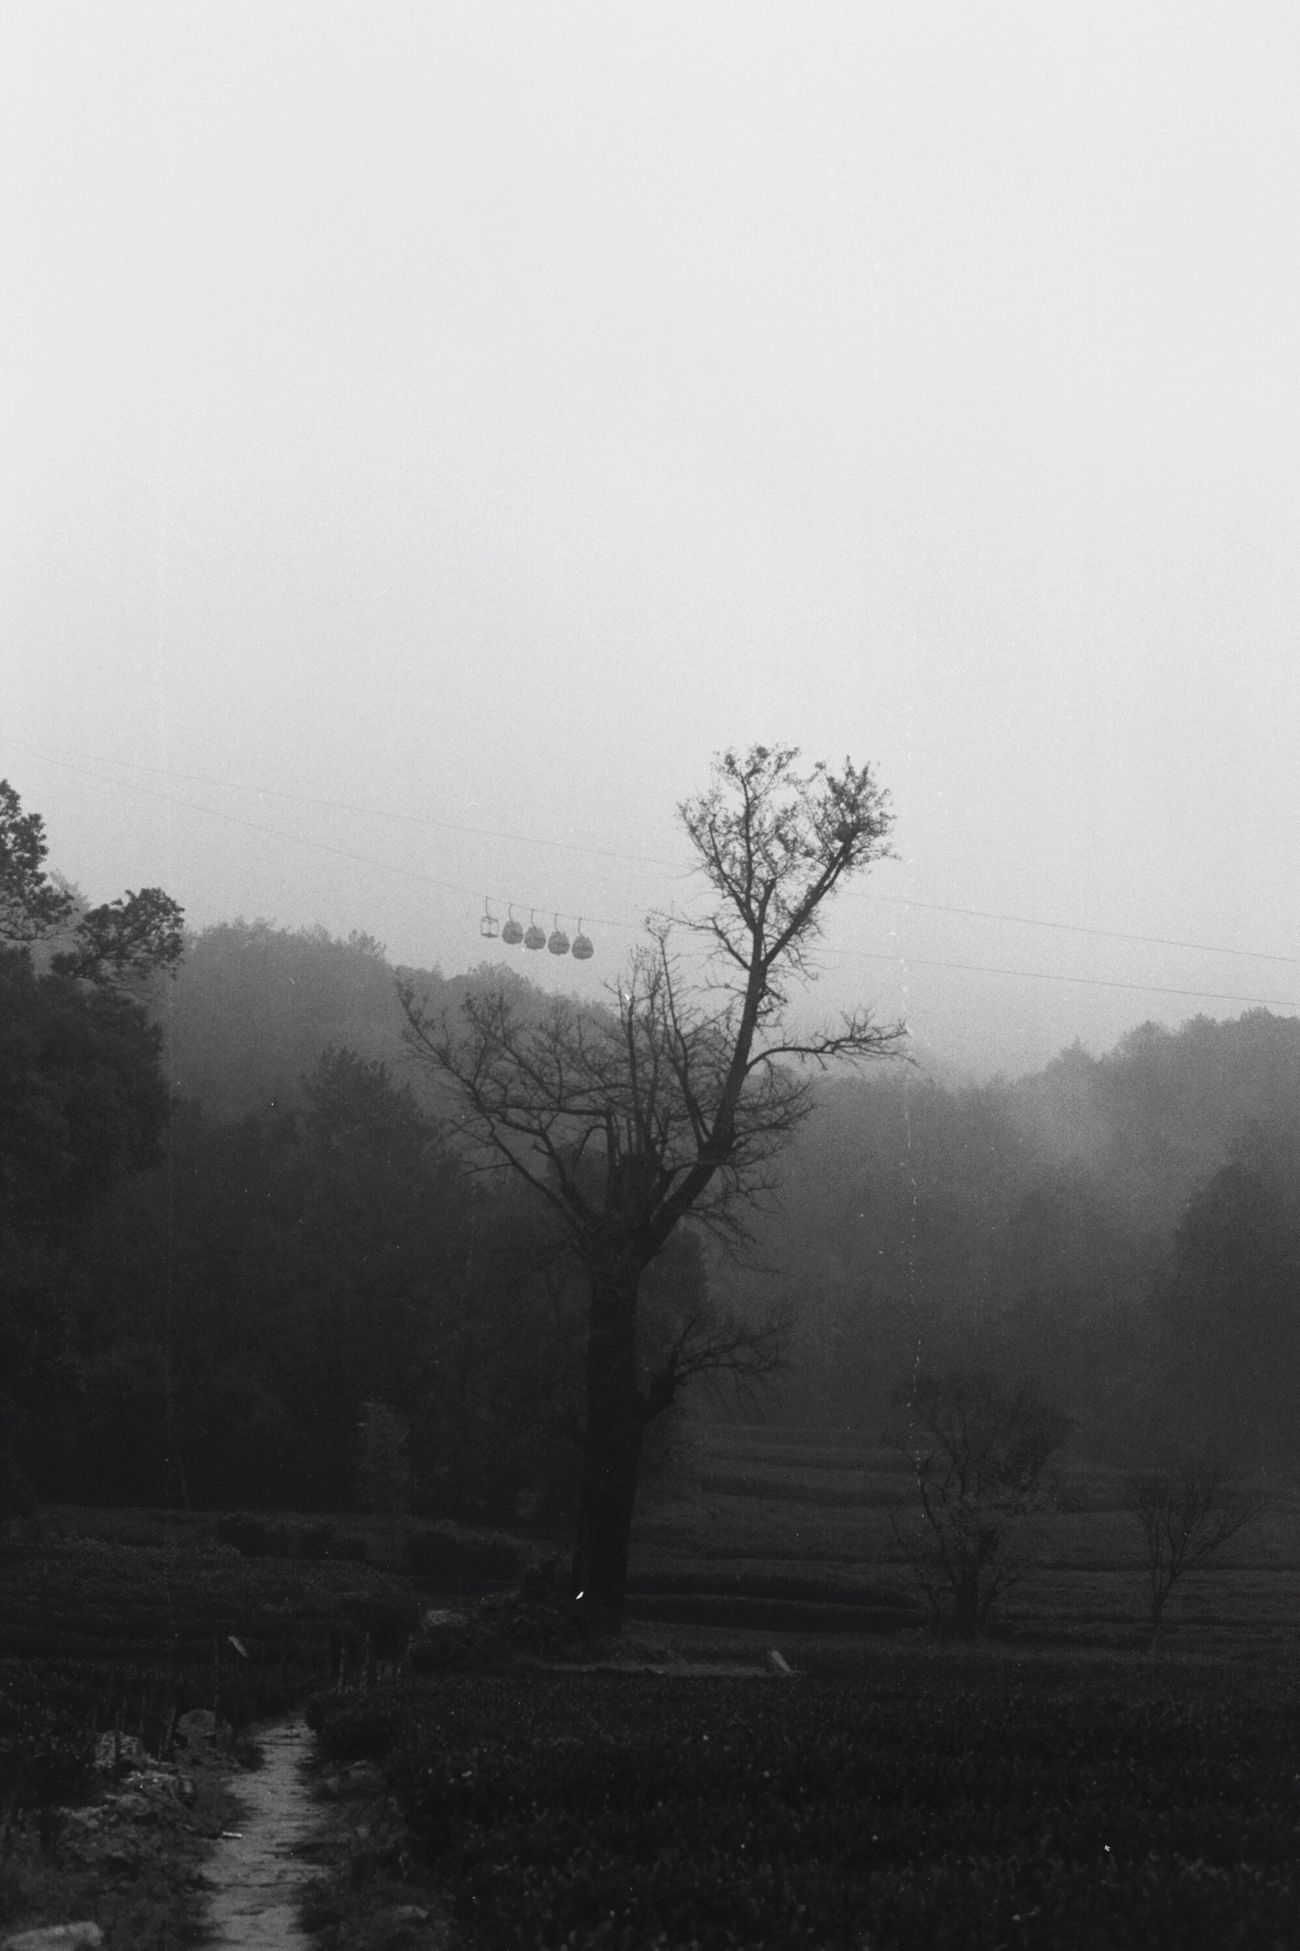 Landscape No People Mist Chinese Black And White Black & White Tree Outdoors